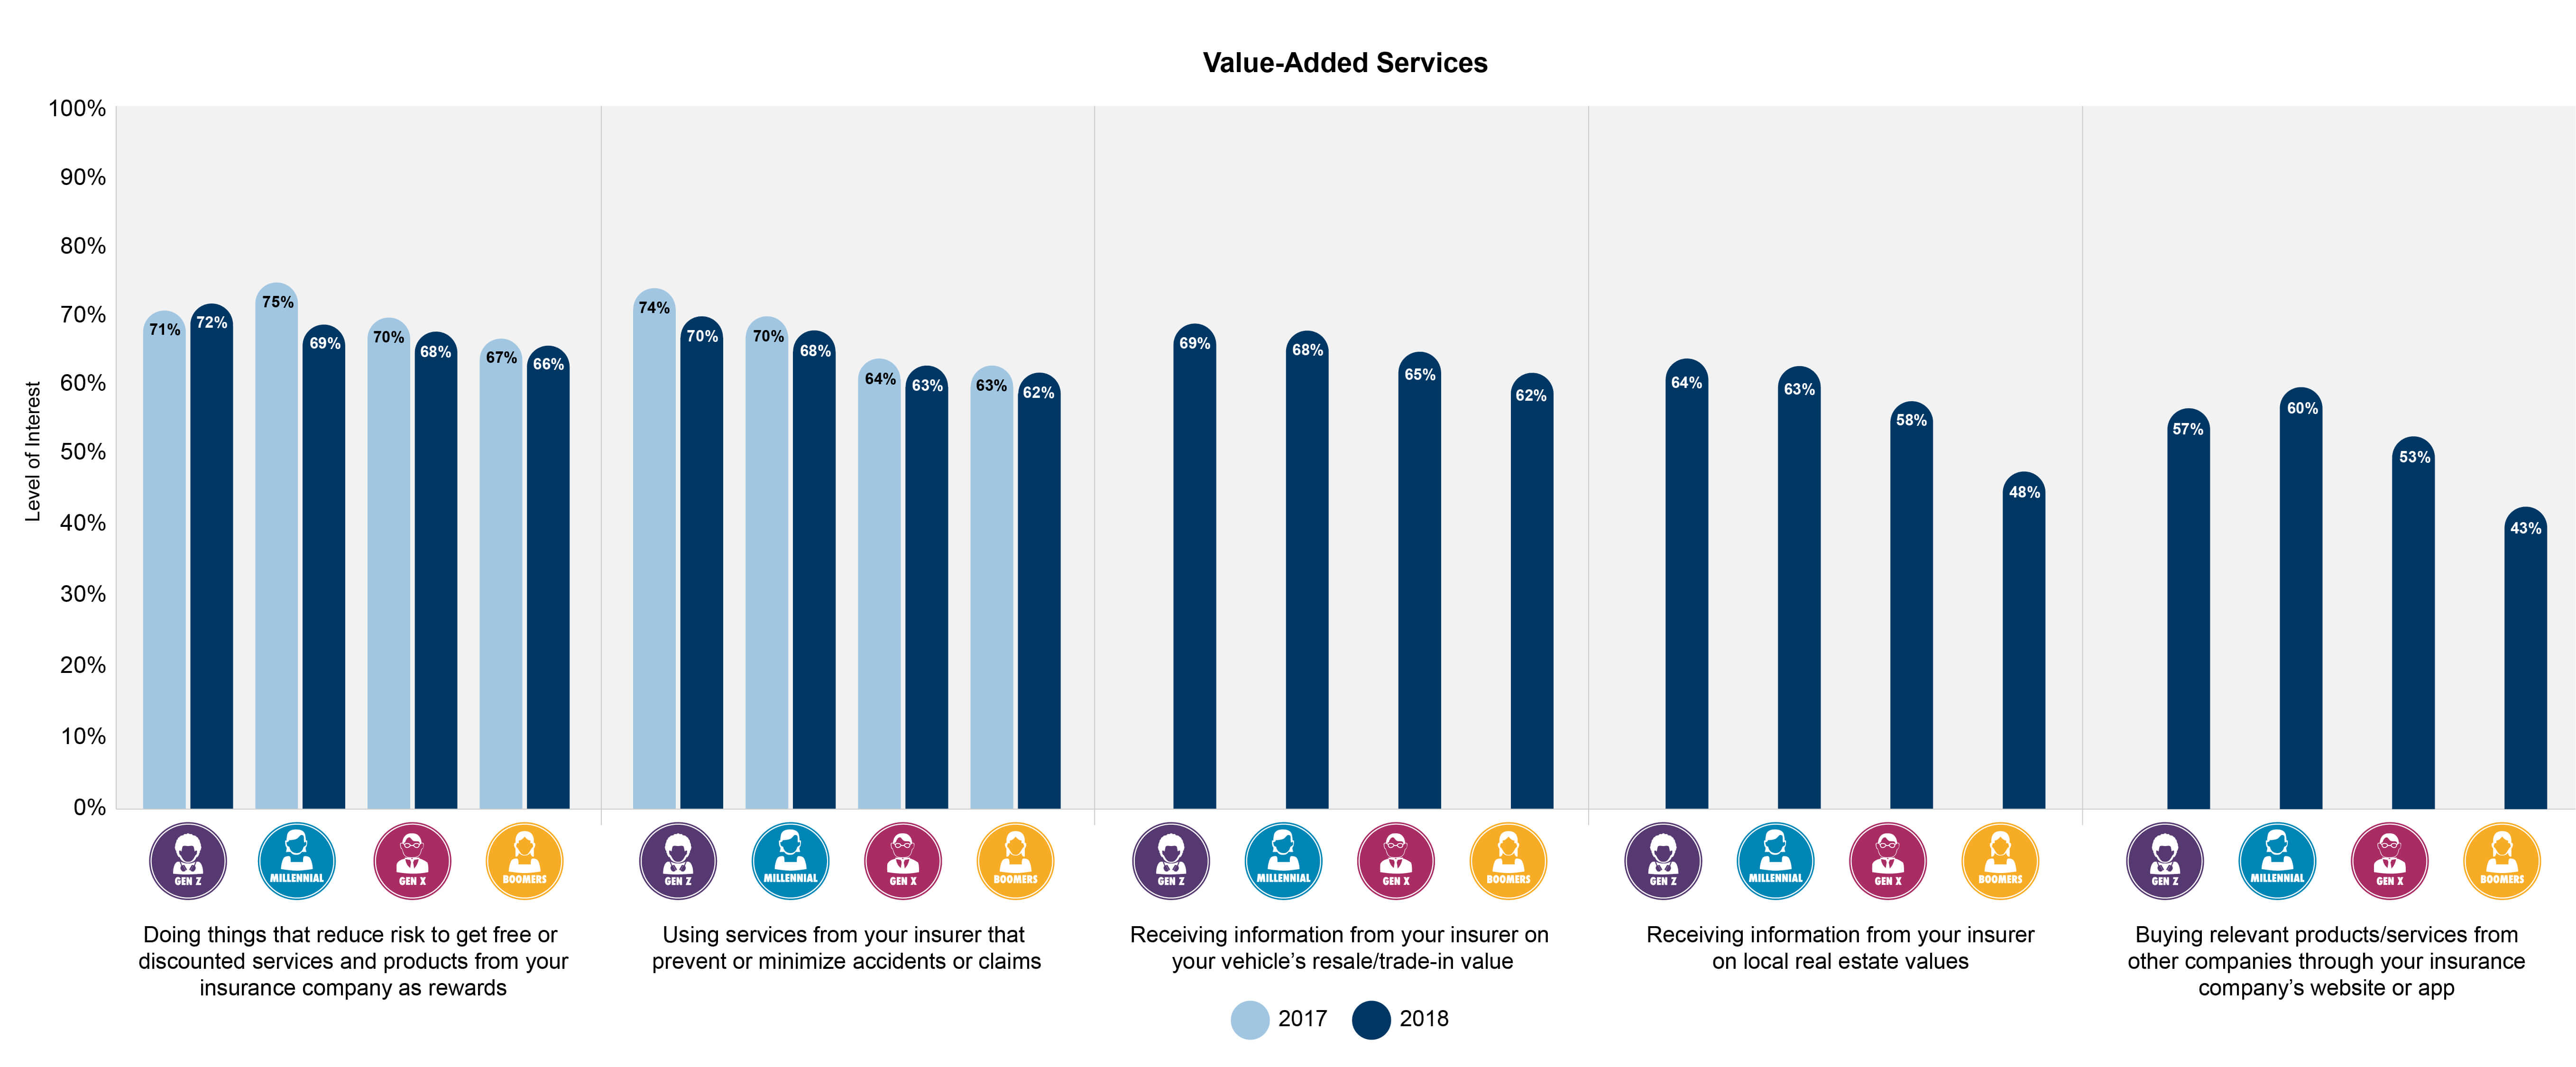 Consumer interest in value-added services